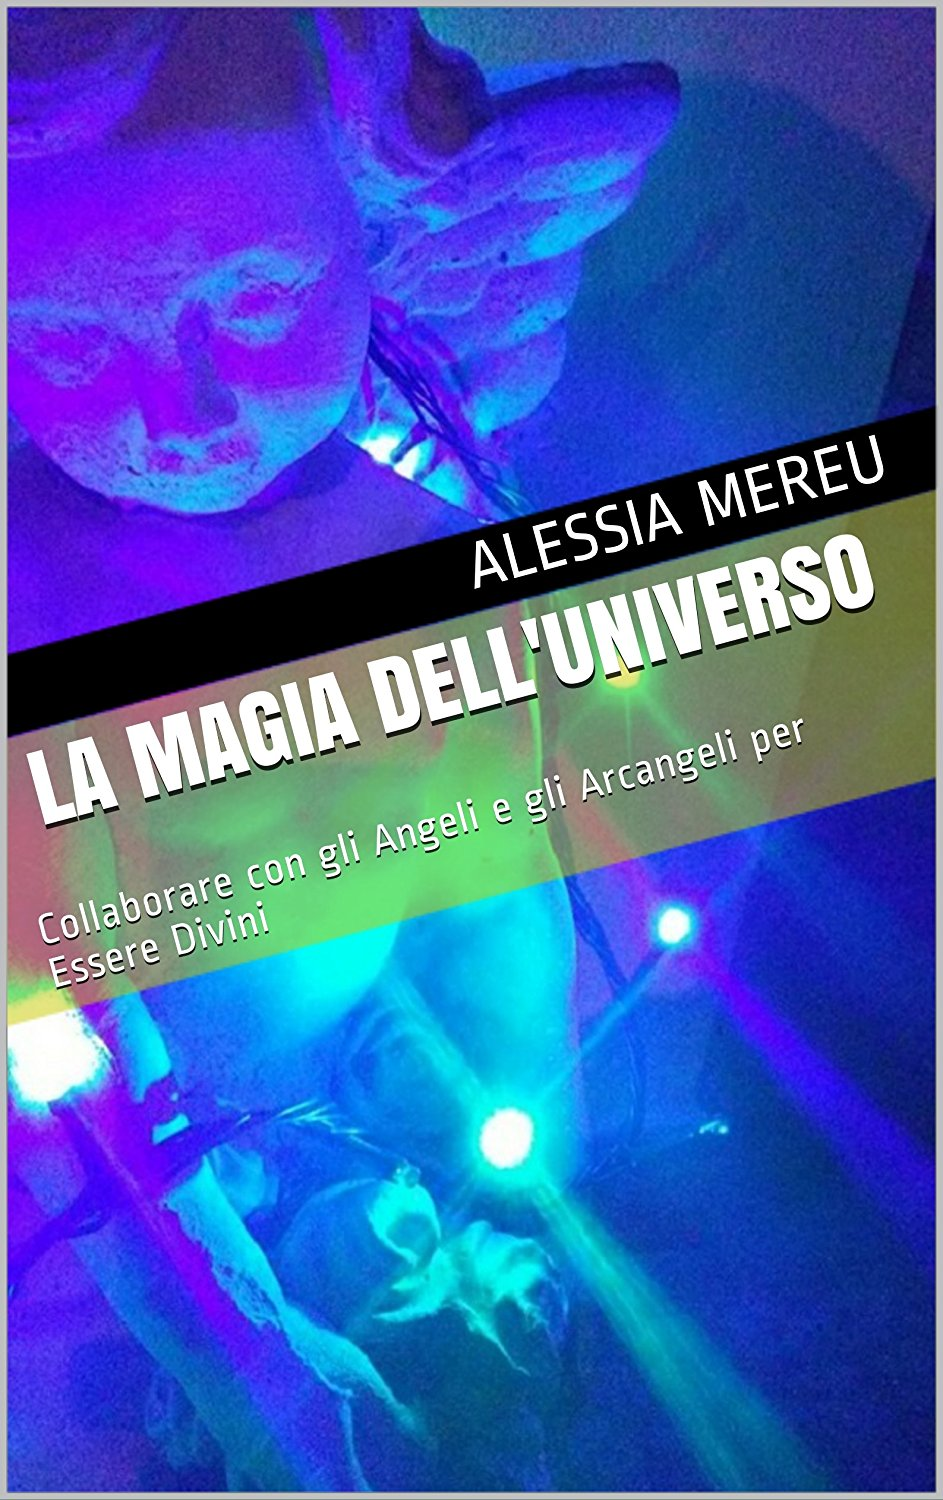 E-book e libri - La Magia dell'Universo Amazon